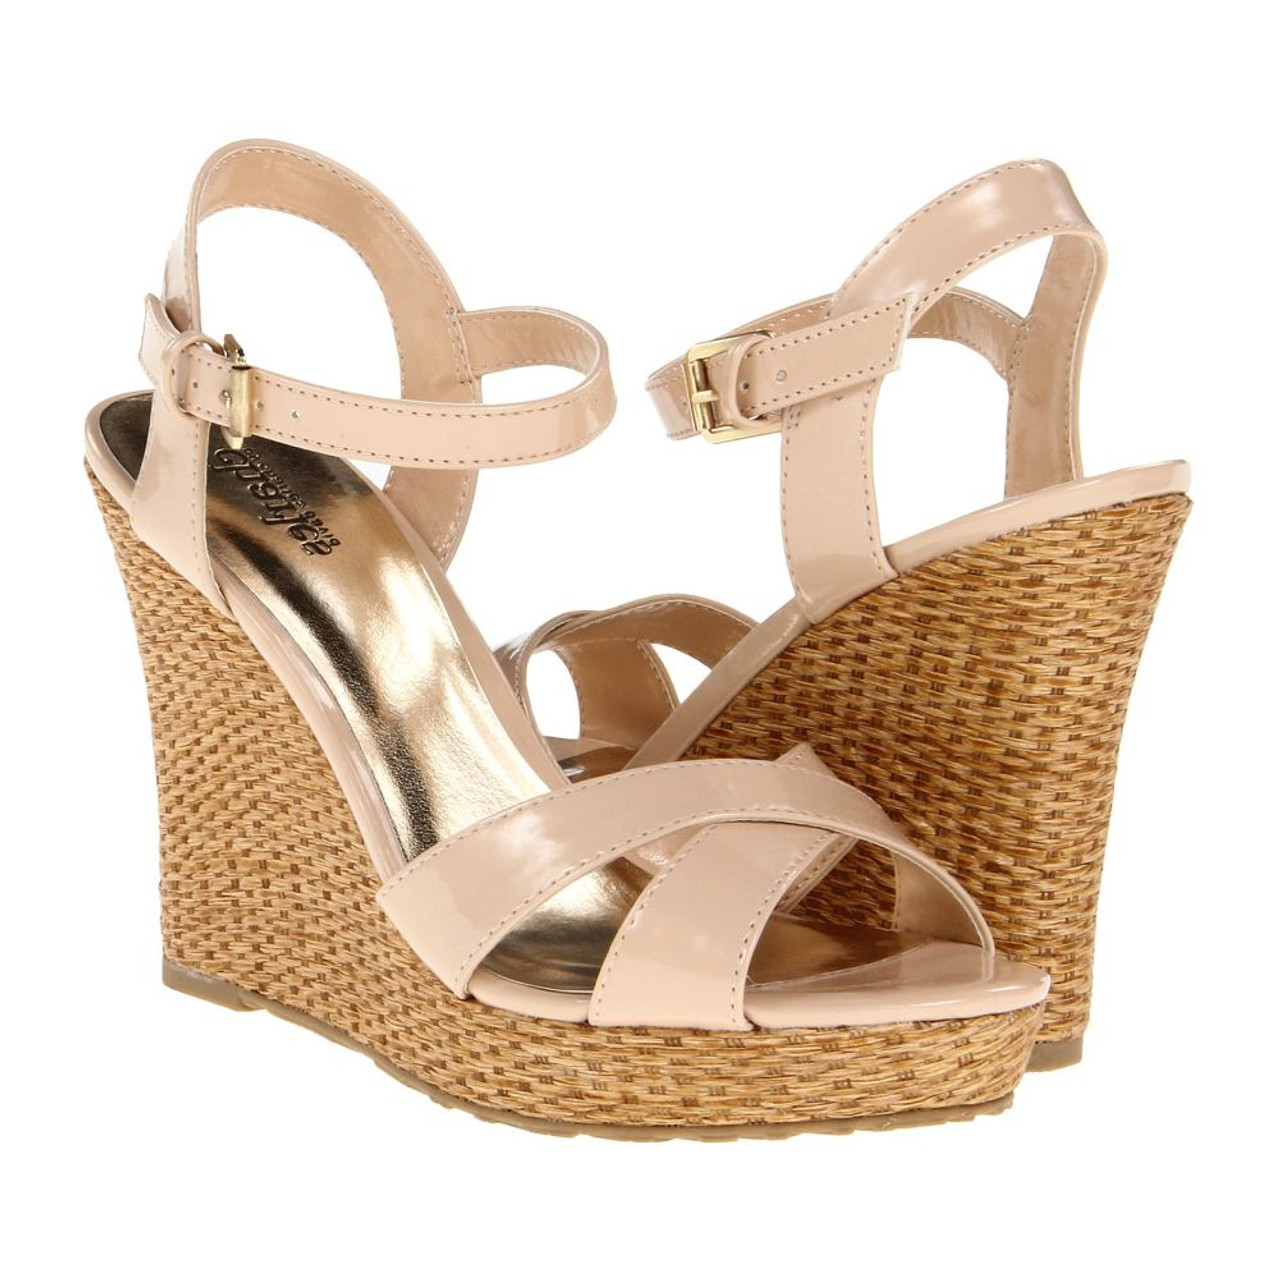 8b6765e6d0f Charles David Tricky Wedge Nude Patent Ladies Sandals - Shop now    Shoolu.com